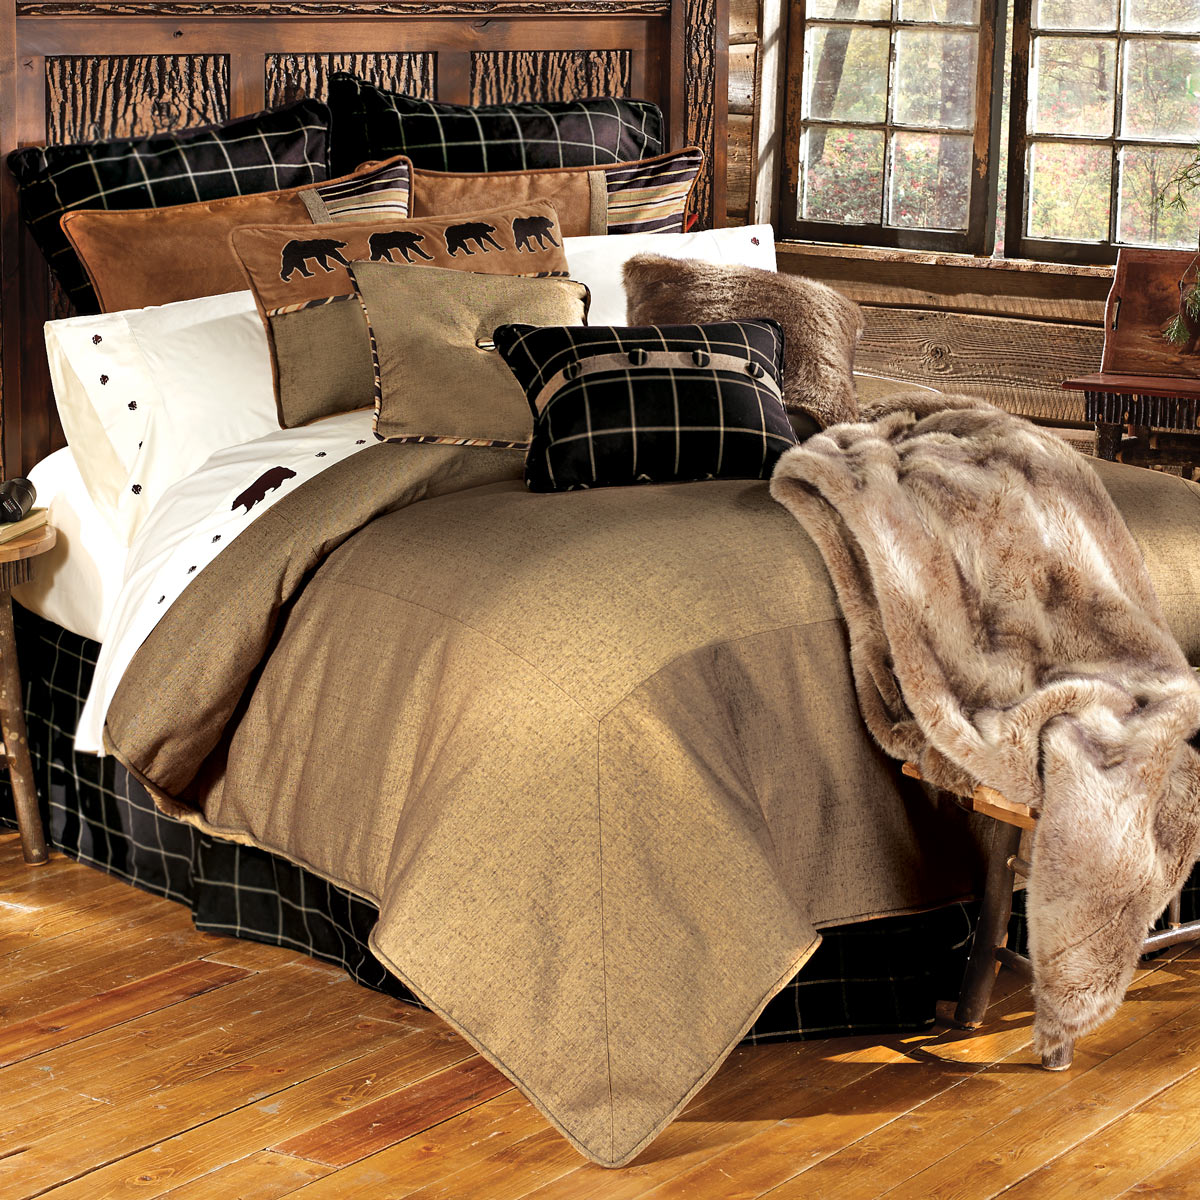 Black Forest Decor Ashbury bed set - twin